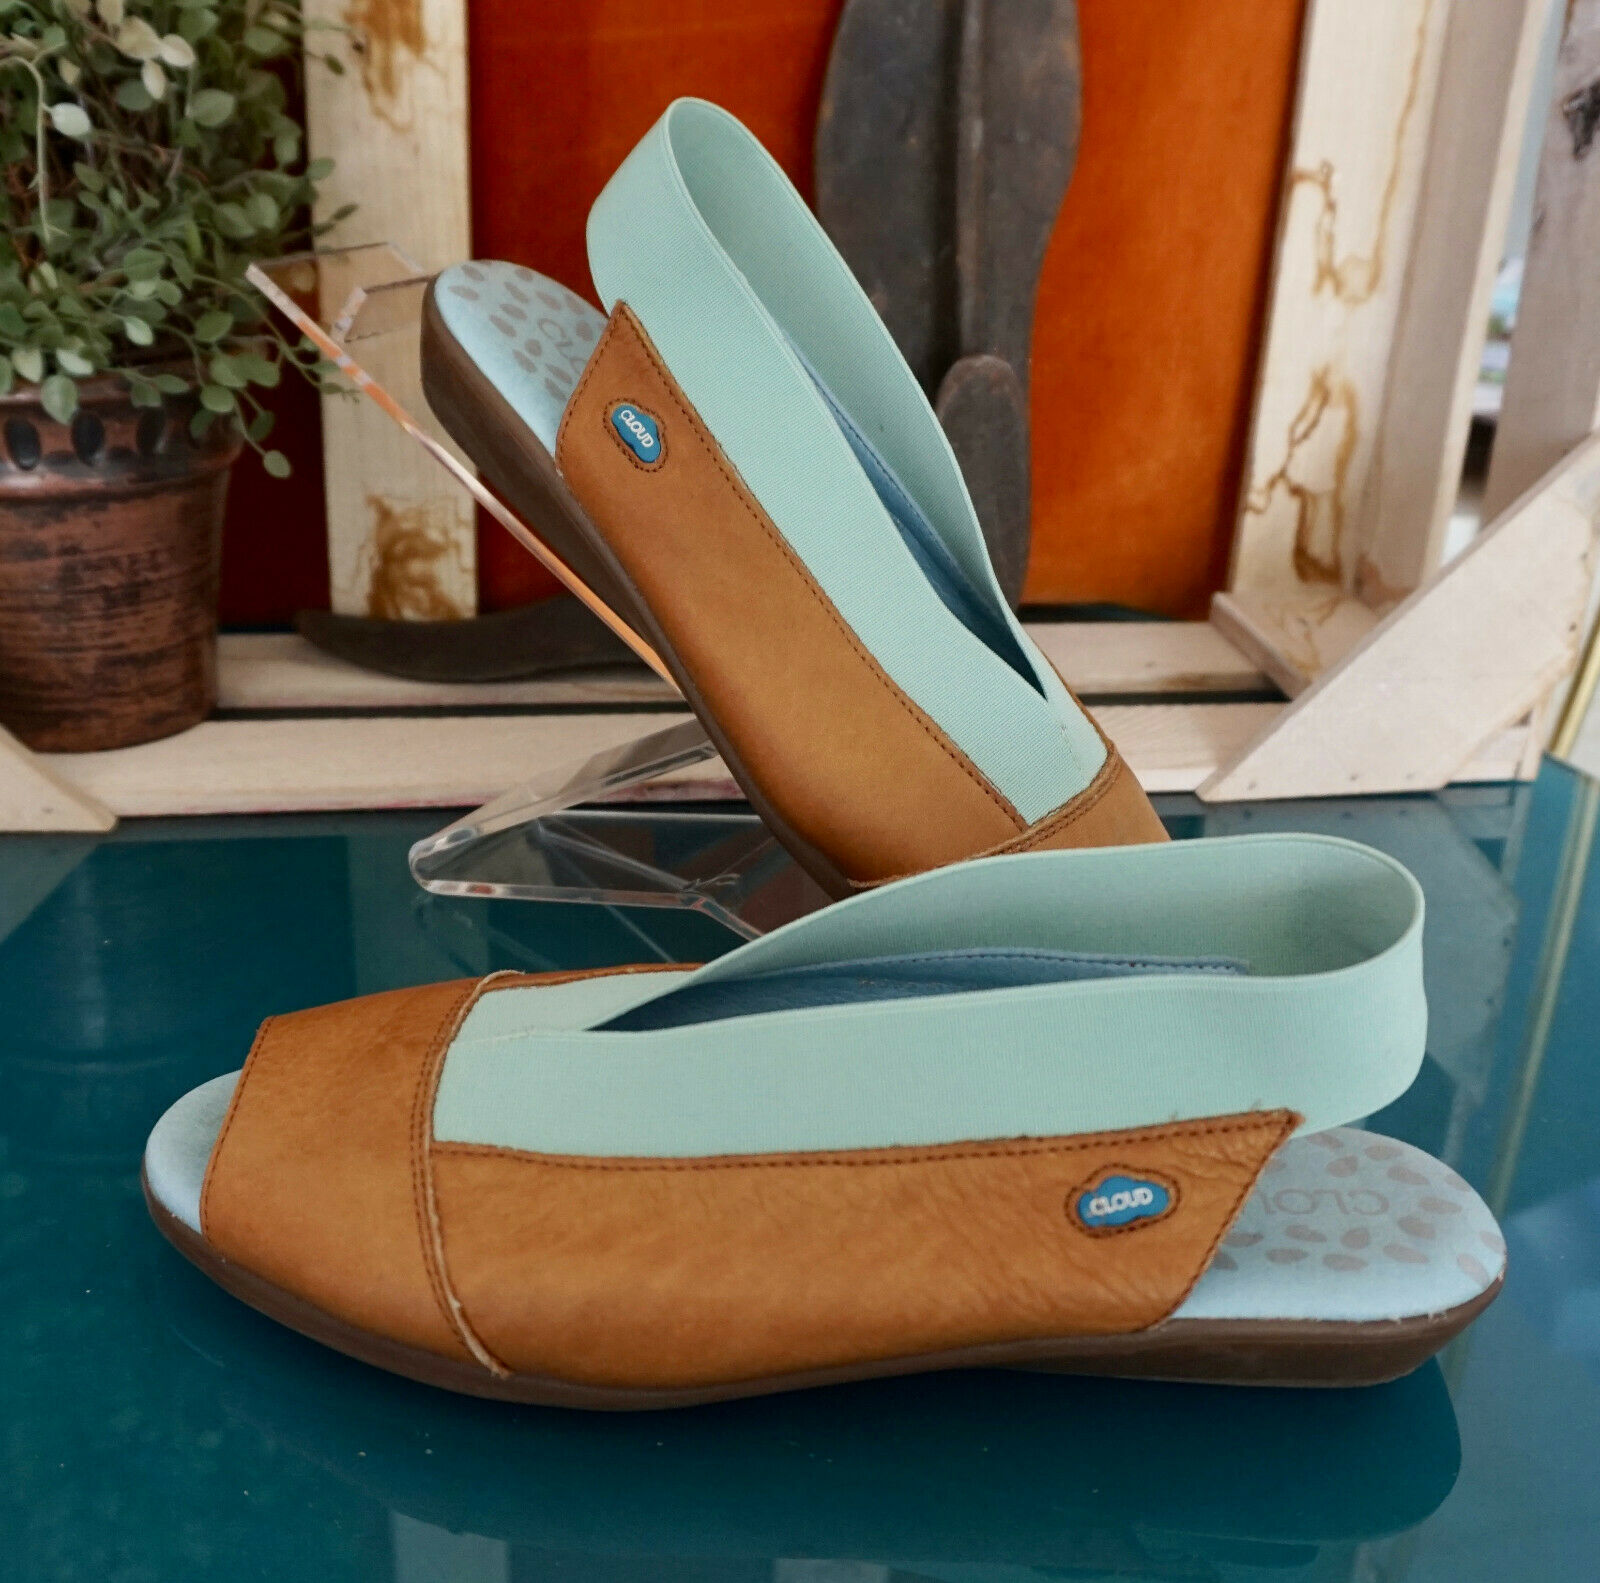 Brown Leather Shoes by Cloud - Size 36 (US 6)